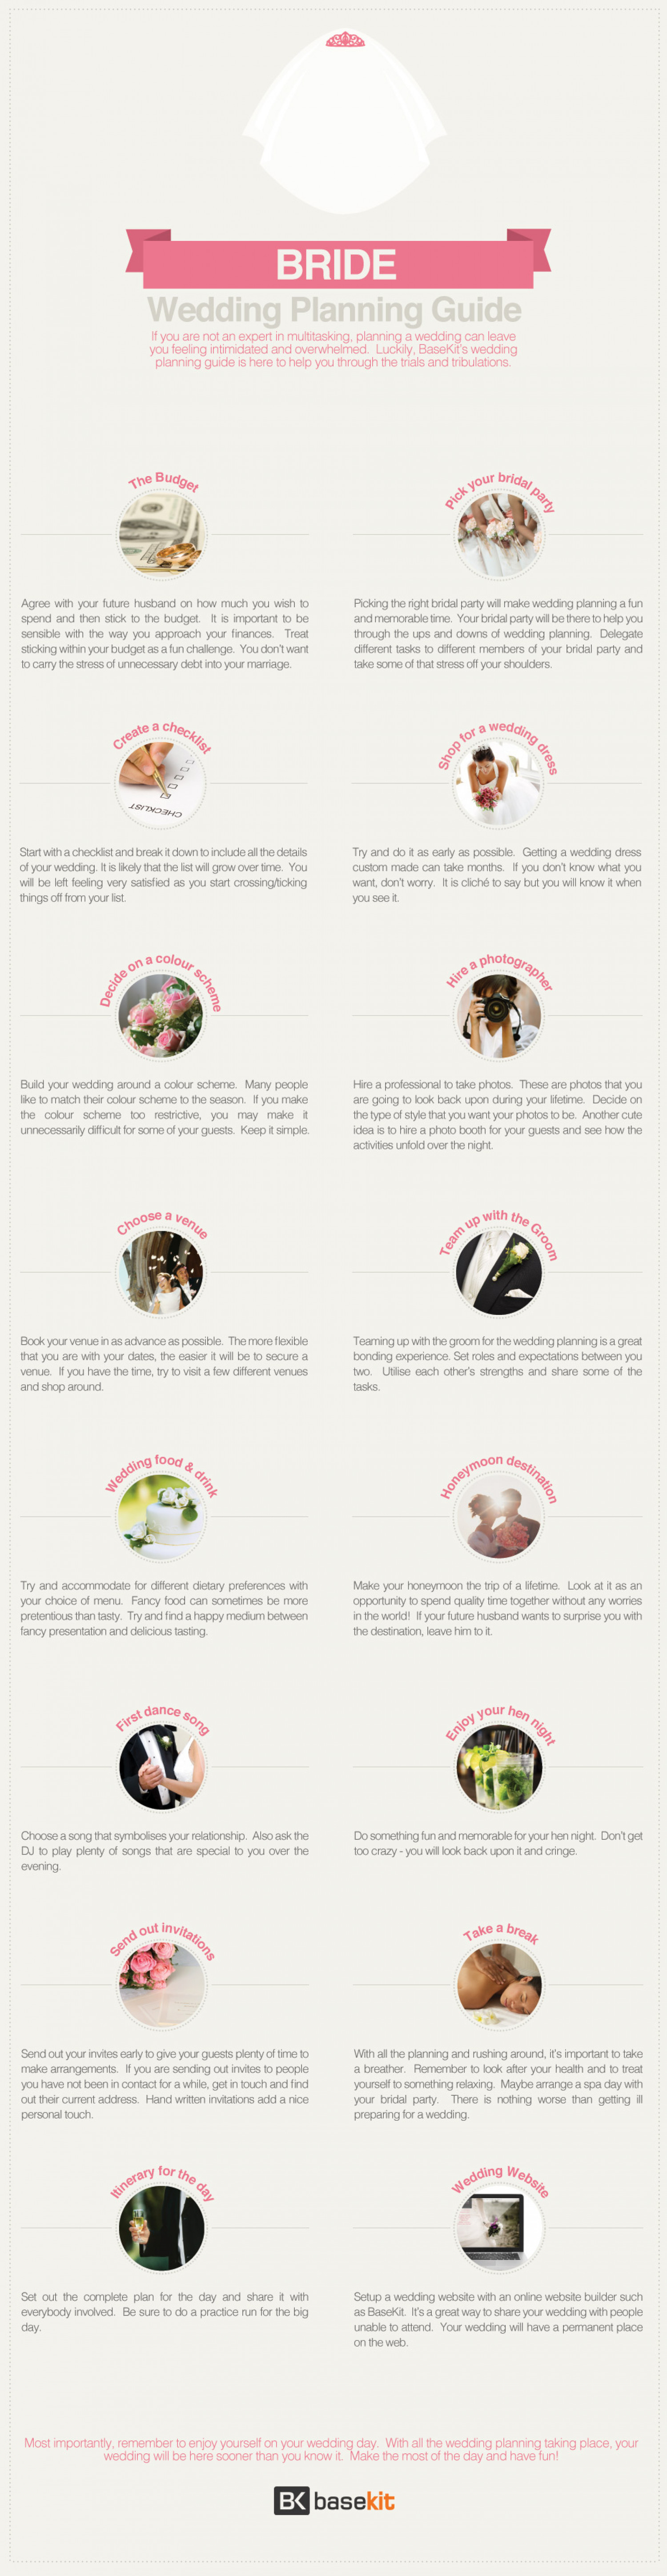 Bride's Guide To Wedding Planning Infographic